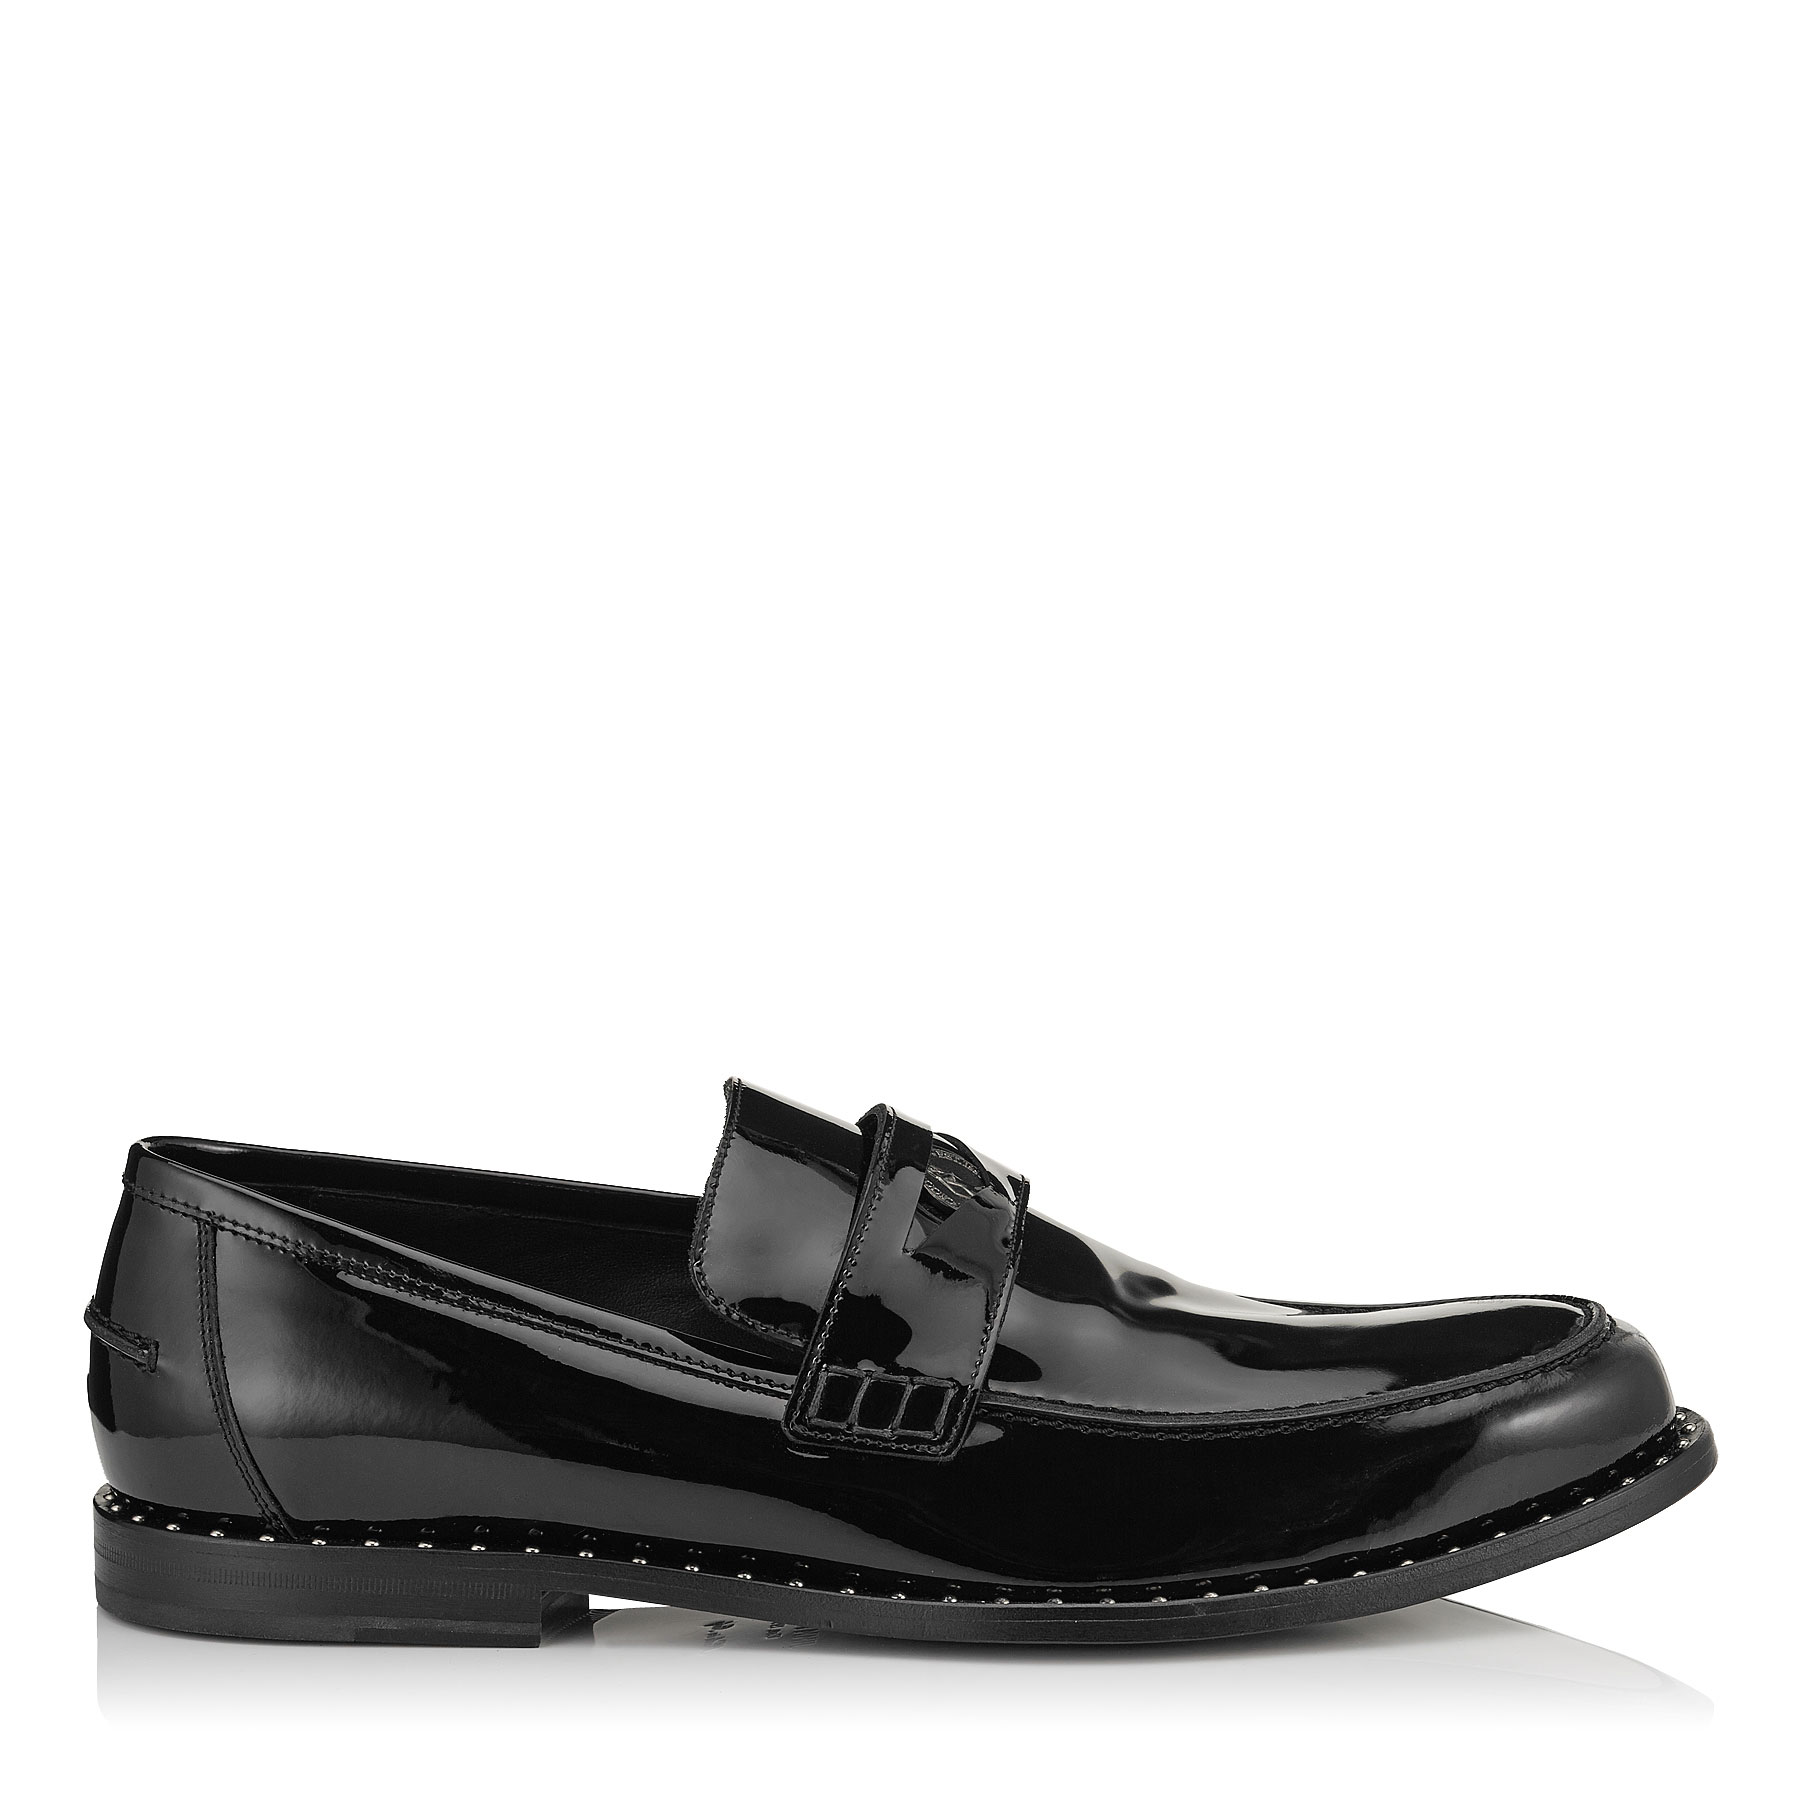 DARBLAY Black Patent Penny Loafers with Steel Studs Detail